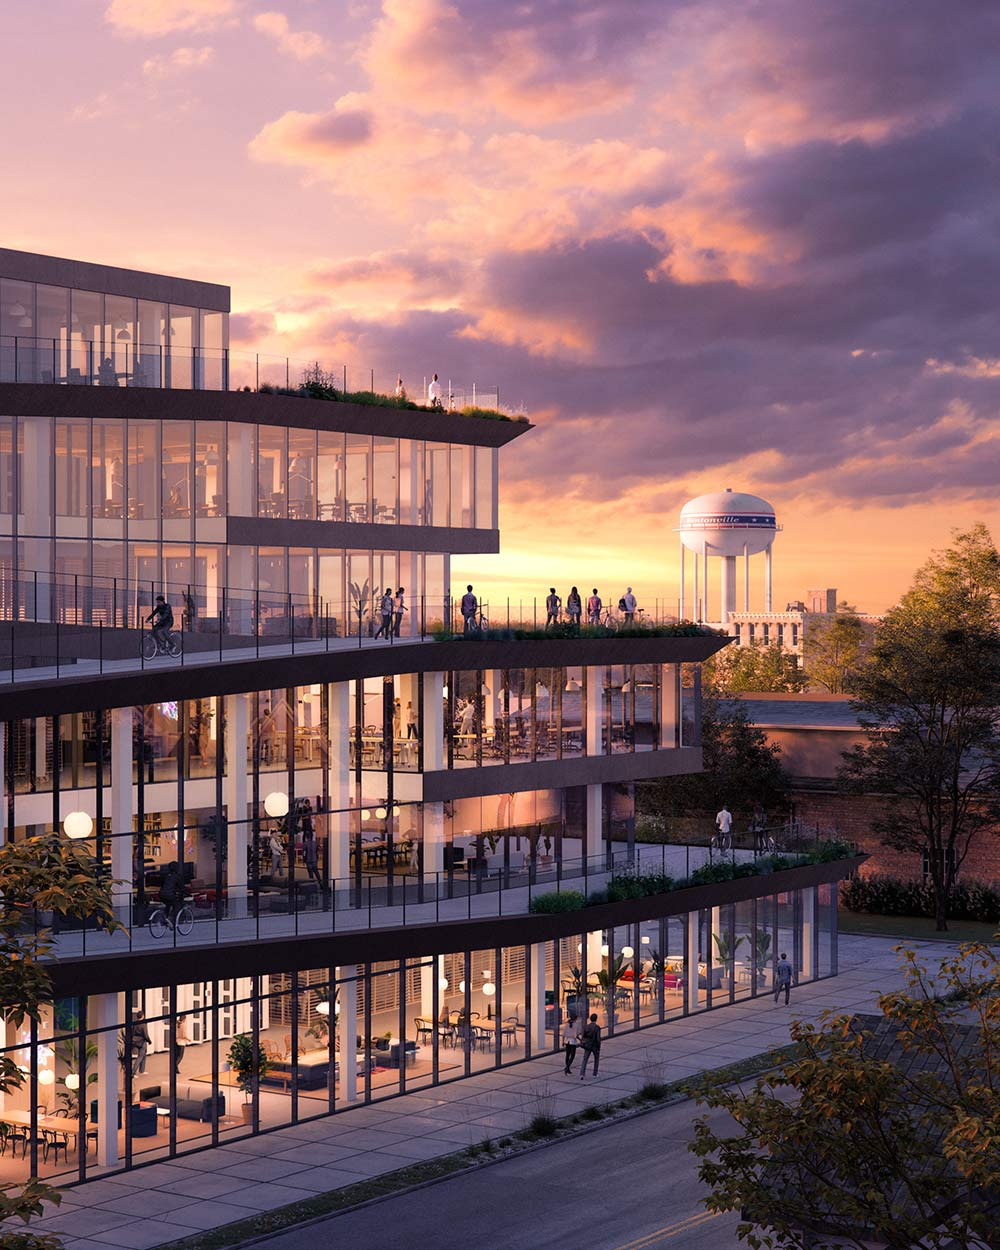 rendering of co-working office space in bentonville arkansas with bike ramps so you can ride to every floor of the building